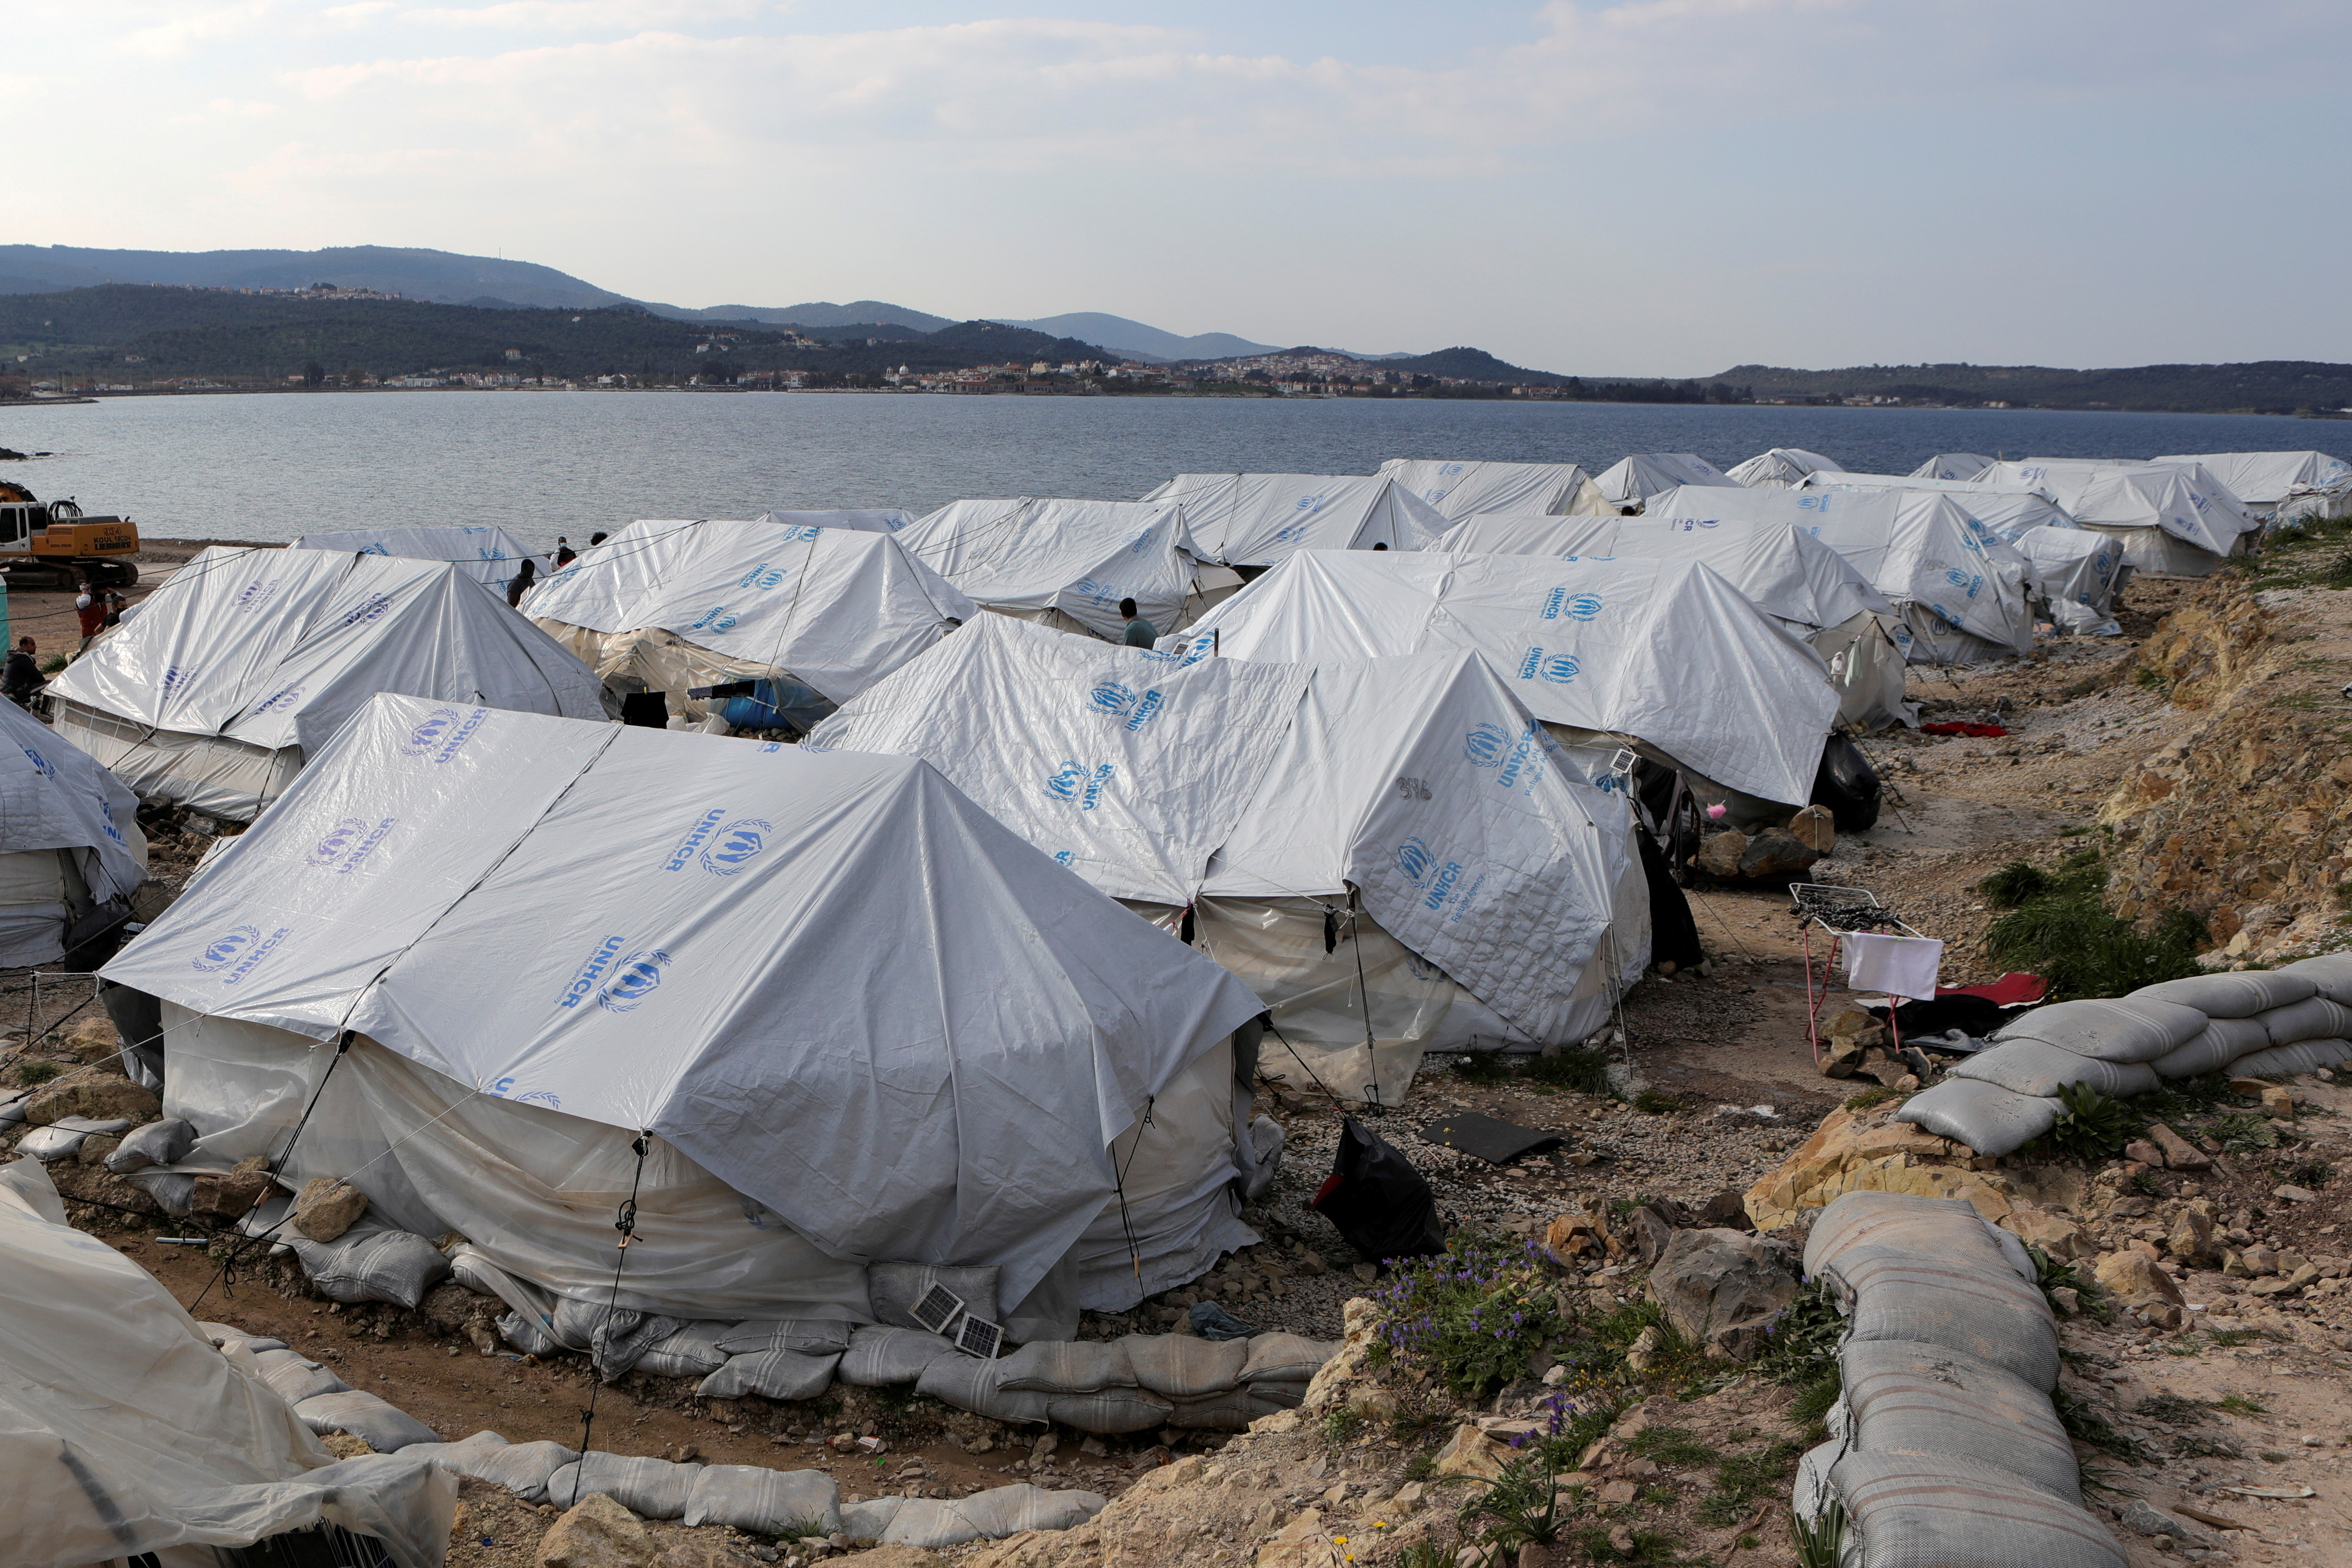 Tents are seen in the Mavrovouni camp for refugees and migrants on the island of Lesbos, Greece, March 29, 2021. REUTERS/Elias Marcou